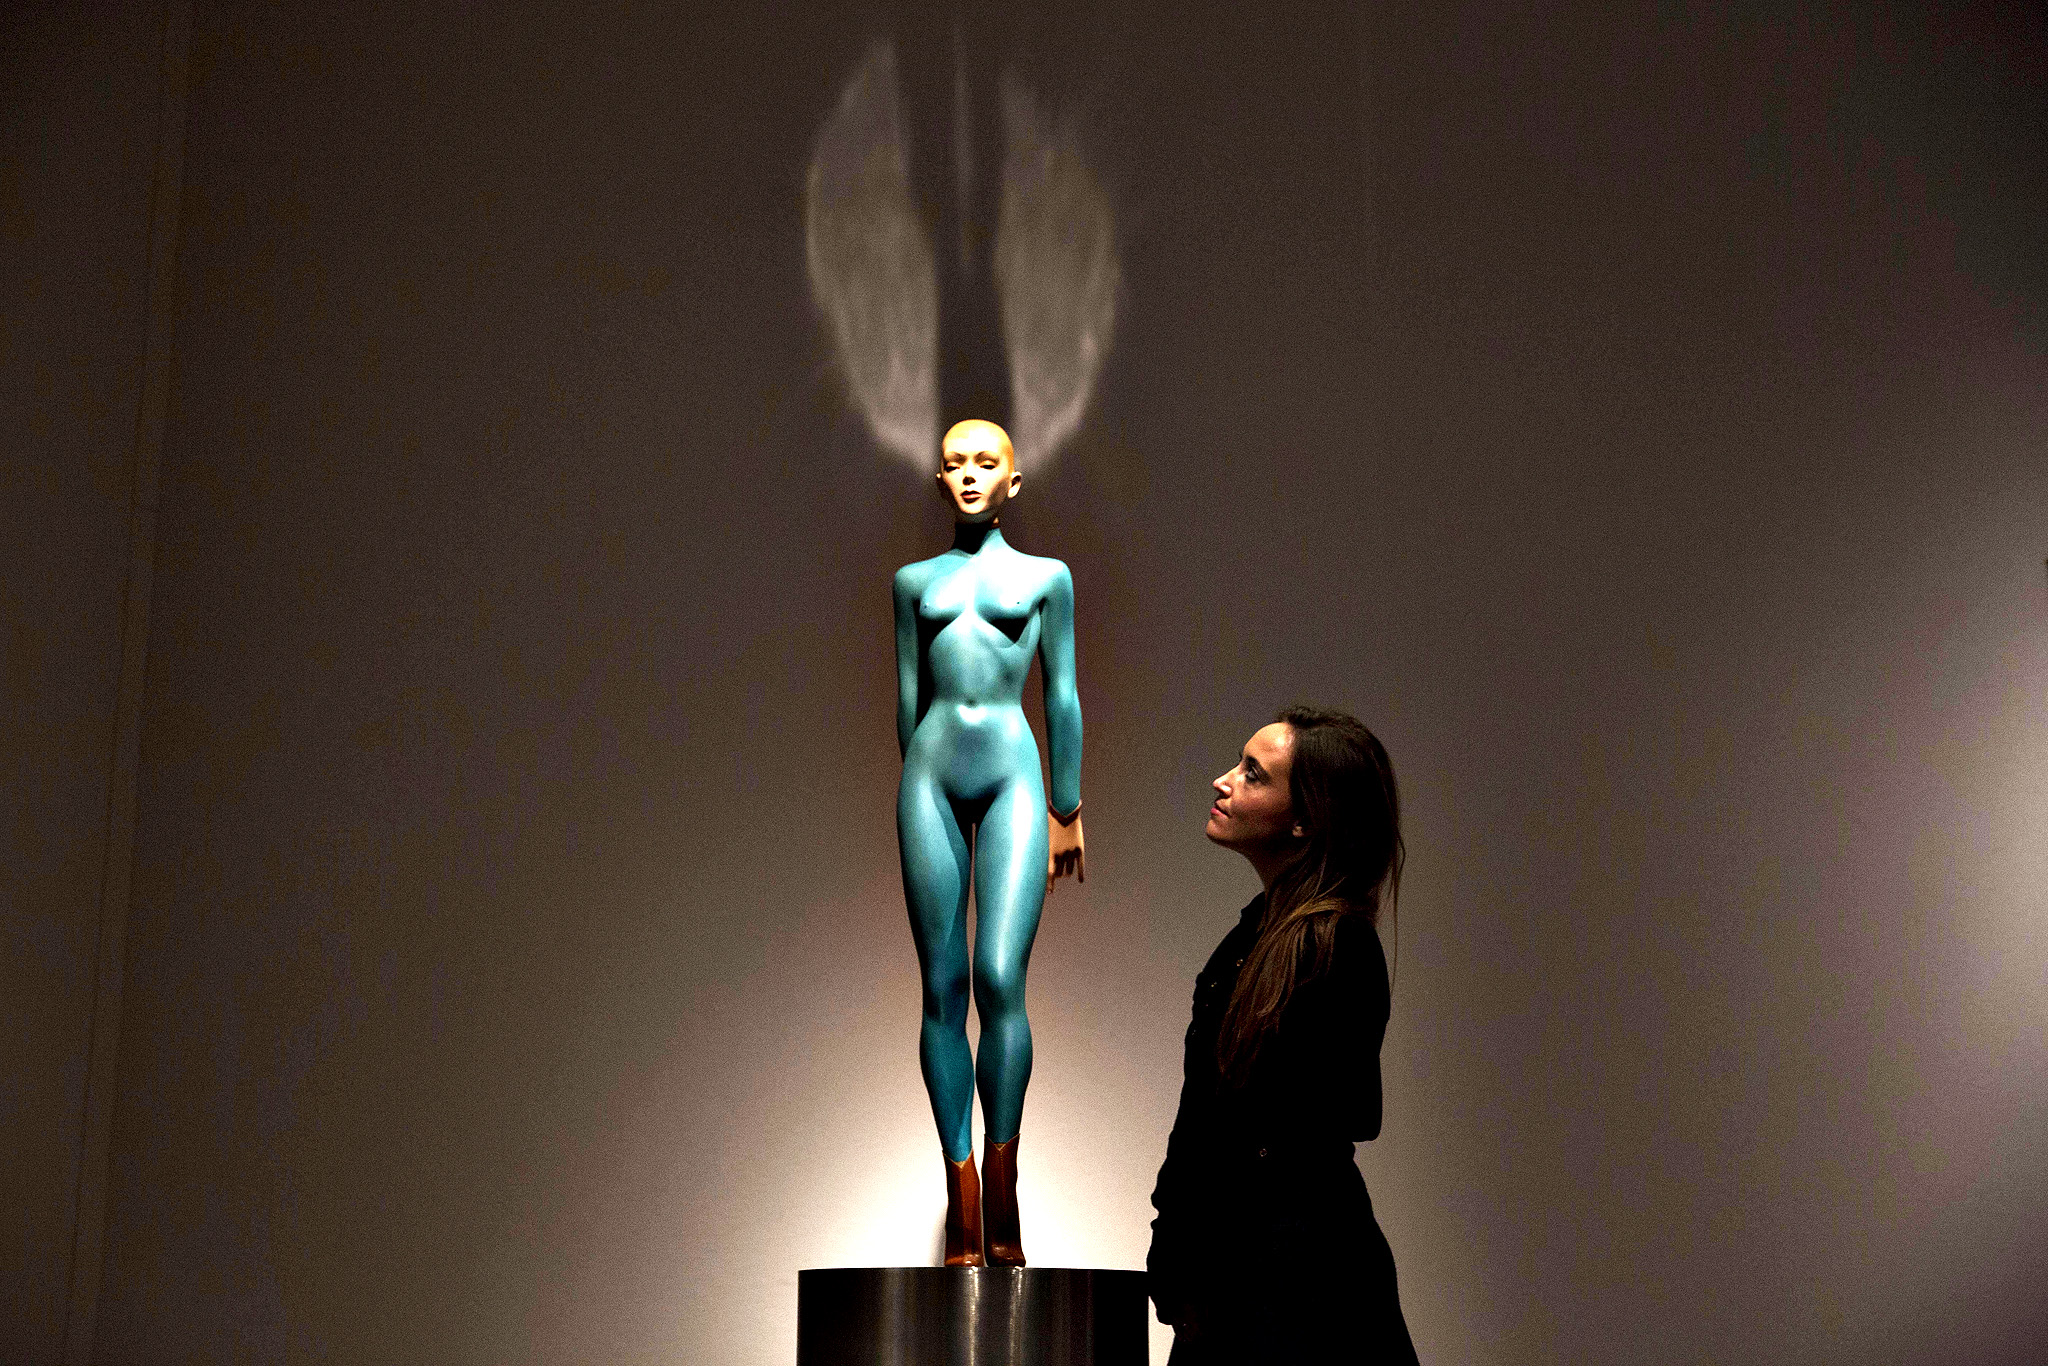 "An employee of the Christie's auction house poses for photographs beside the Allen Jones sculpture ""Enchanteresse"", painted bronze and leather on a steel base at their premises in London, Monday, Nov. 17, 2014.  The piece is estimated to fetch 60,000 to 80,000 pounds ($93,870 to $125,160, / 75,122 to 100,163 euro), when it features in a Modern British and Irish Art evening sale in London on November 19."